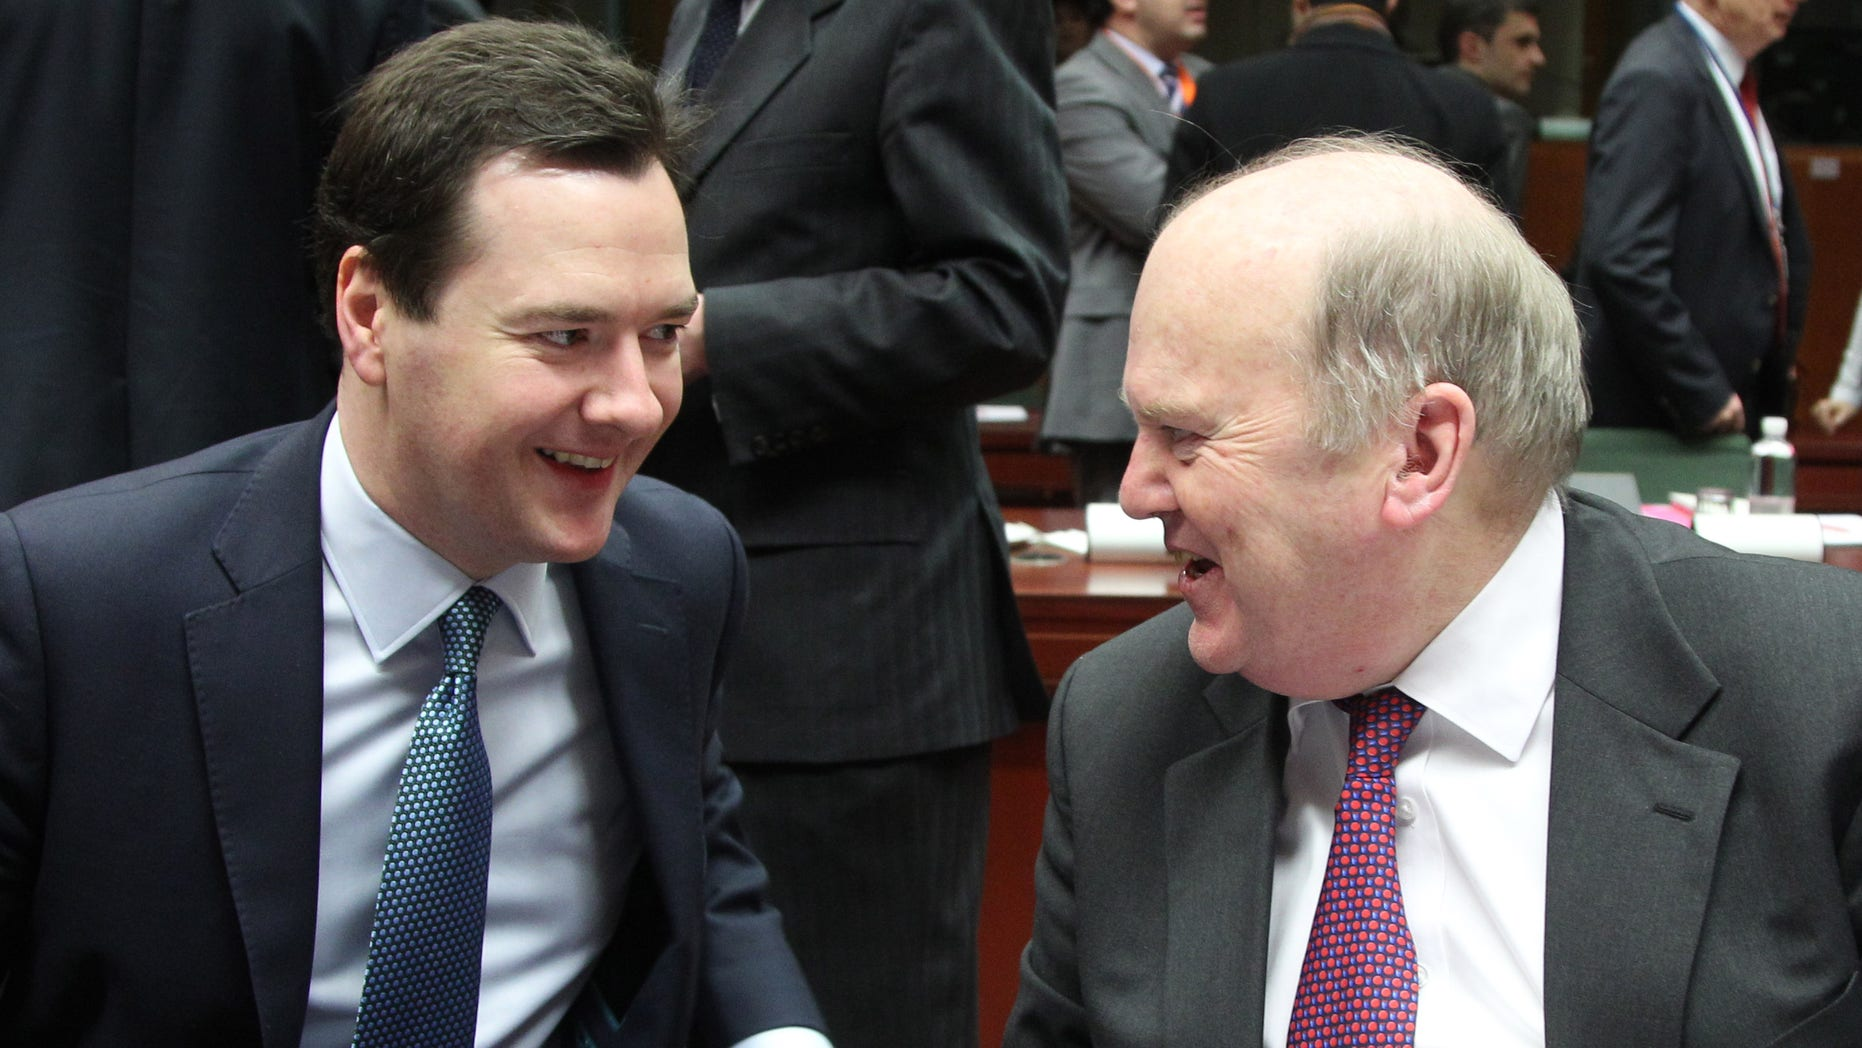 British Chancellor of the Exchequer George Osborne, left, talks with President of the EU rotating Council and Irish Finance Minister Michael Noonan during the EU finance ministers meeting, at the European Council building in Brussels, Tuesday, Feb. 12, 2013. Irish Finance Minister Michael Noonan has voiced his opposition to any proposal that the European Central Bank should intervene to get the value of the euro down. (AP Photo/Yves Logghe)